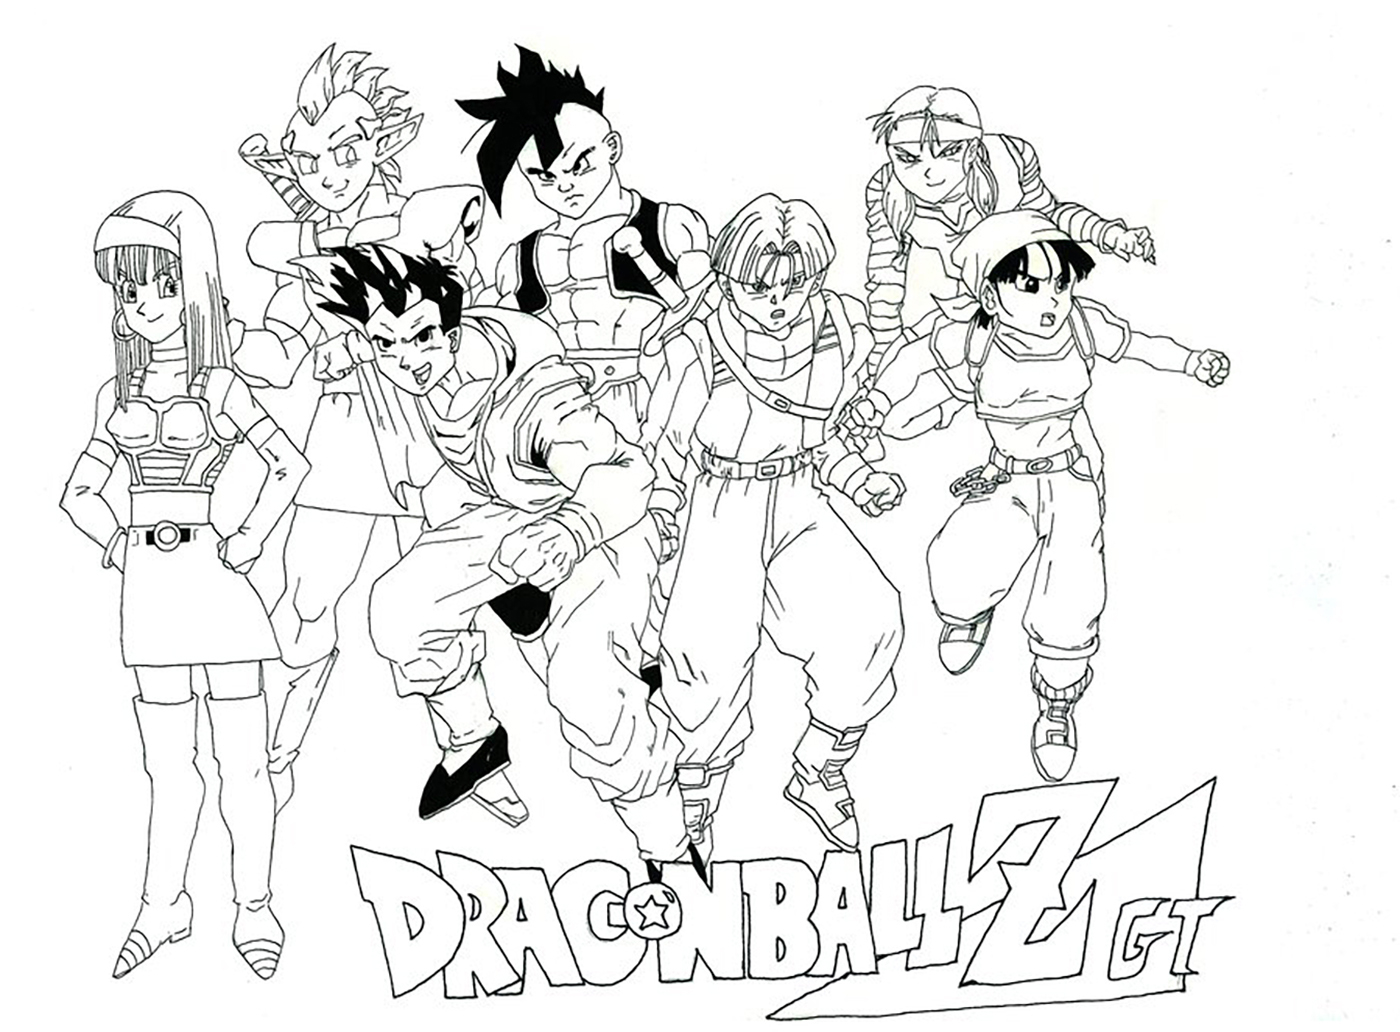 Facile Dragon Ball Gt - Coloriage Dragon Ball Z avec Coloriage Trunks Du Futur